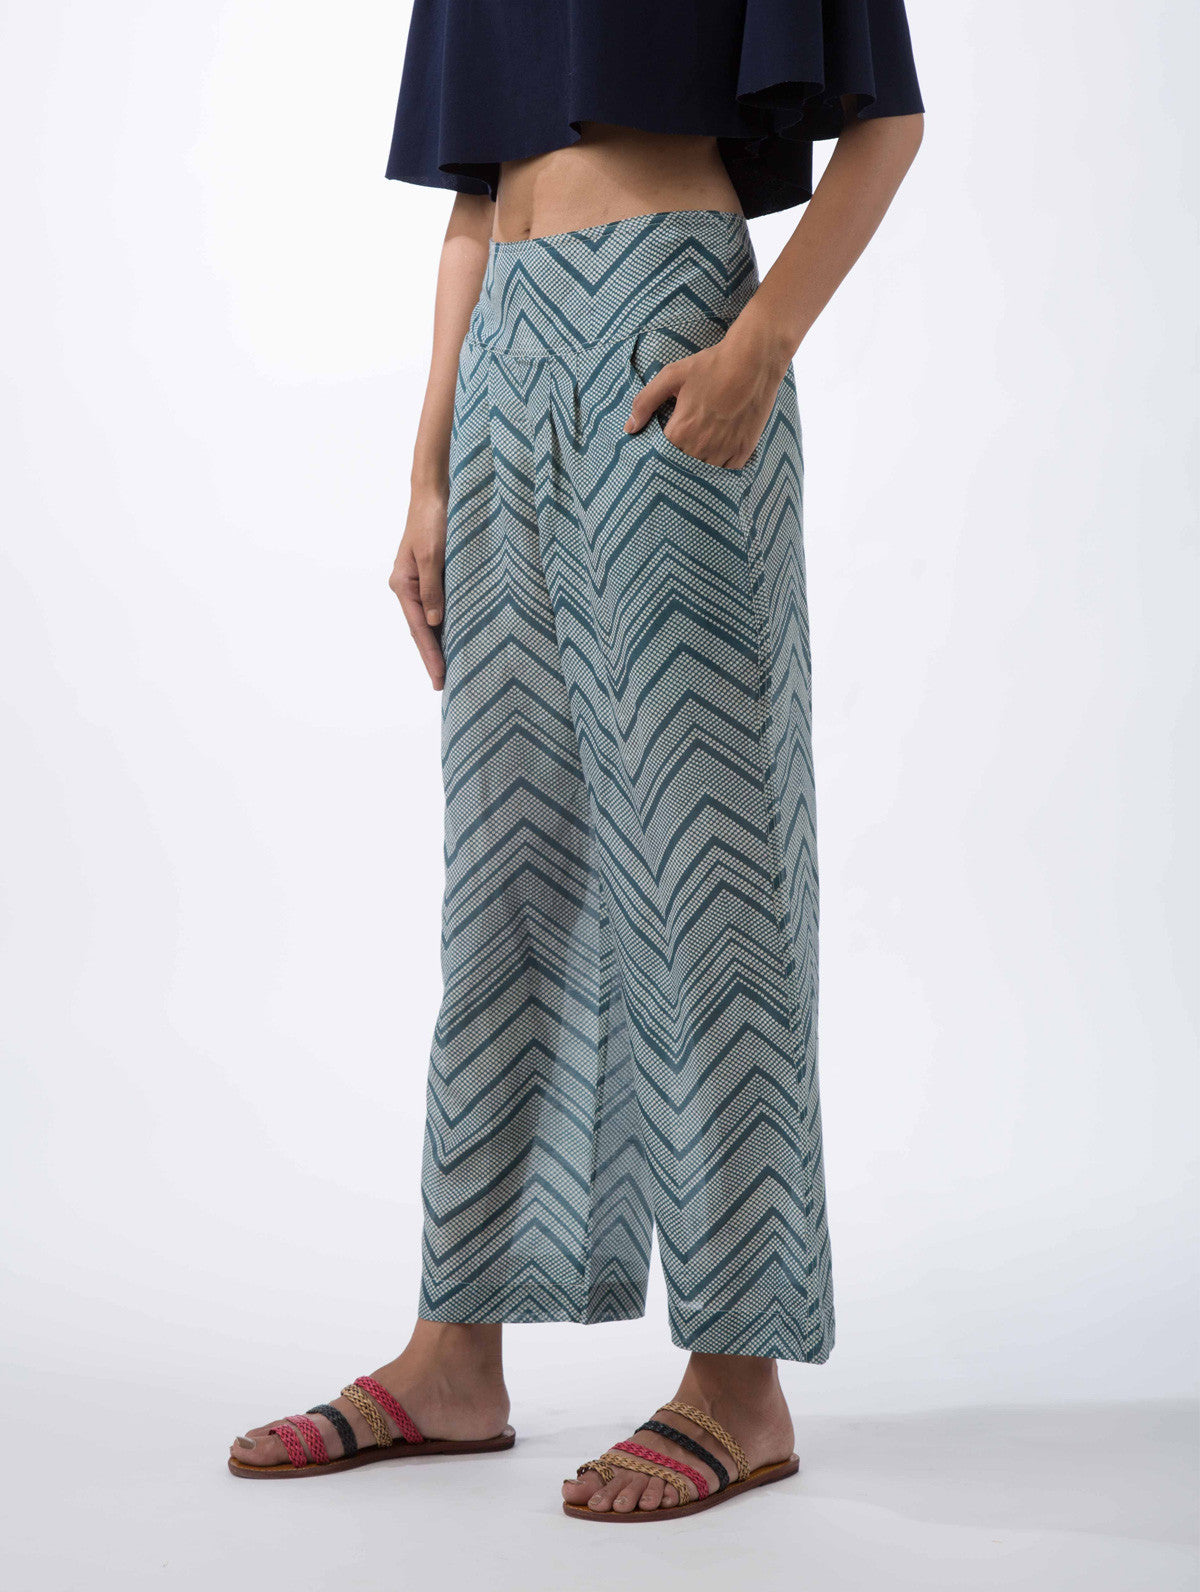 Chevron Printed Pants